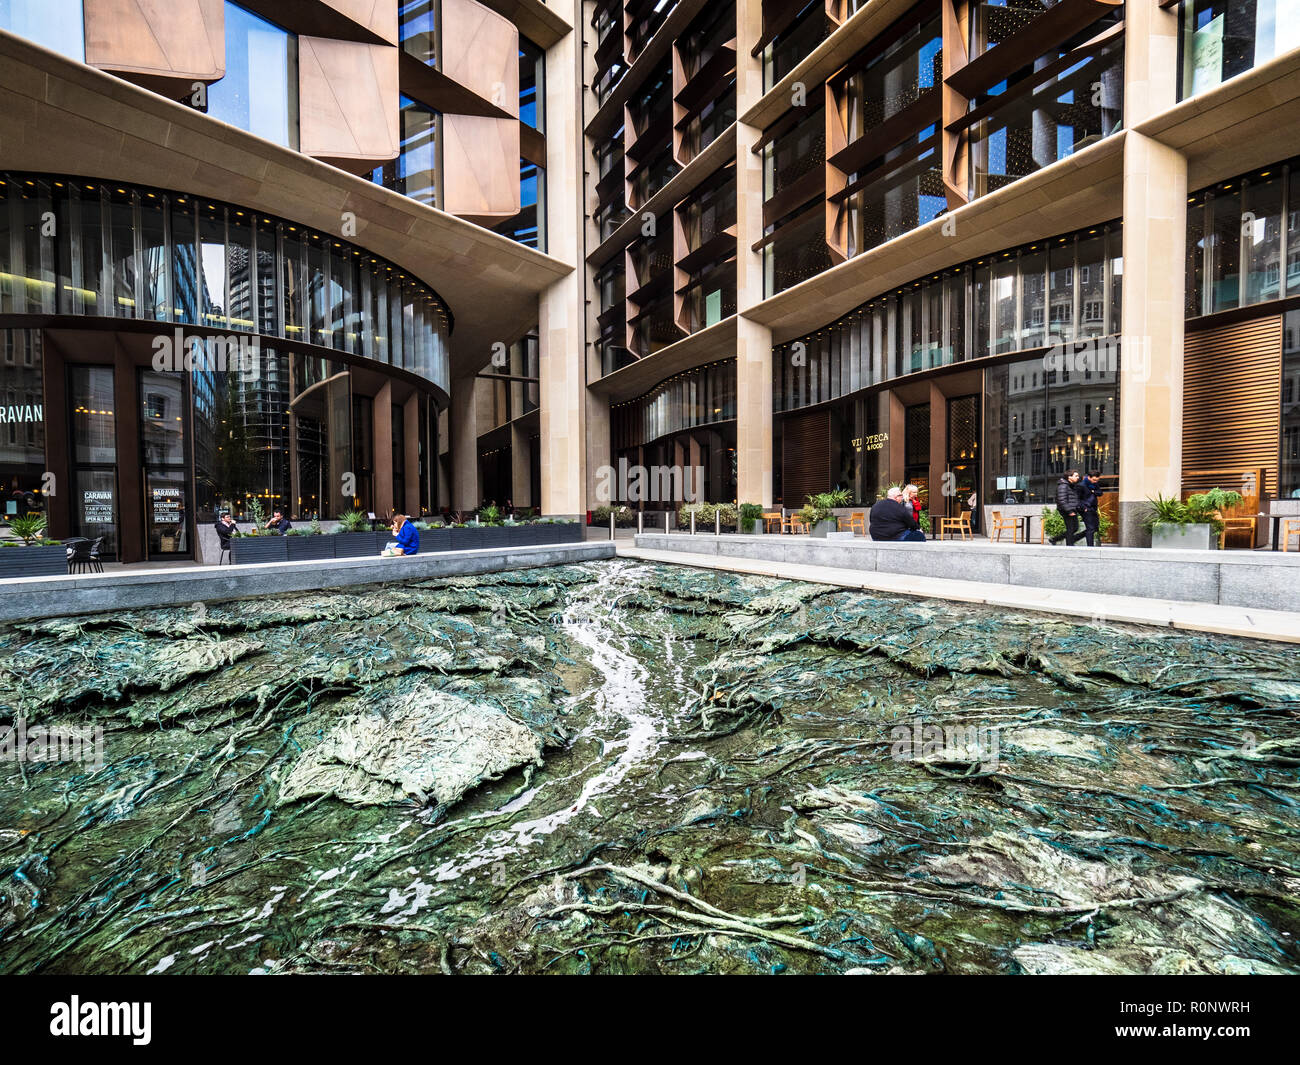 Bloomberg Building London - European HQ of Bloomberg L.P. Opened 2017 architects Foster and Partners - Cristina Iglesias's water feature - Stock Image